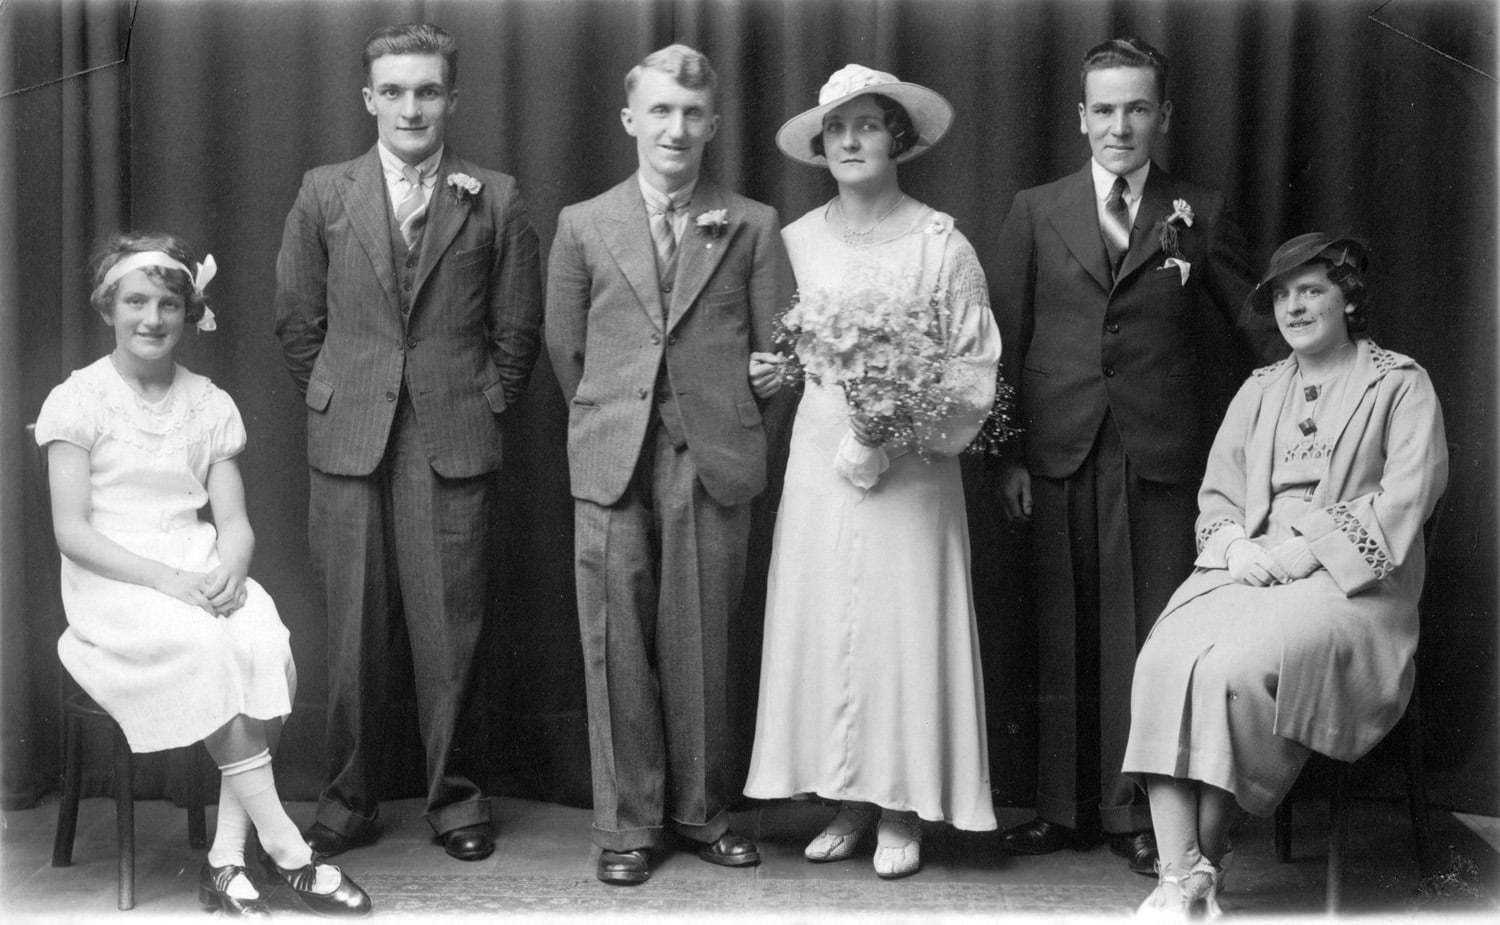 Possibly Holley family